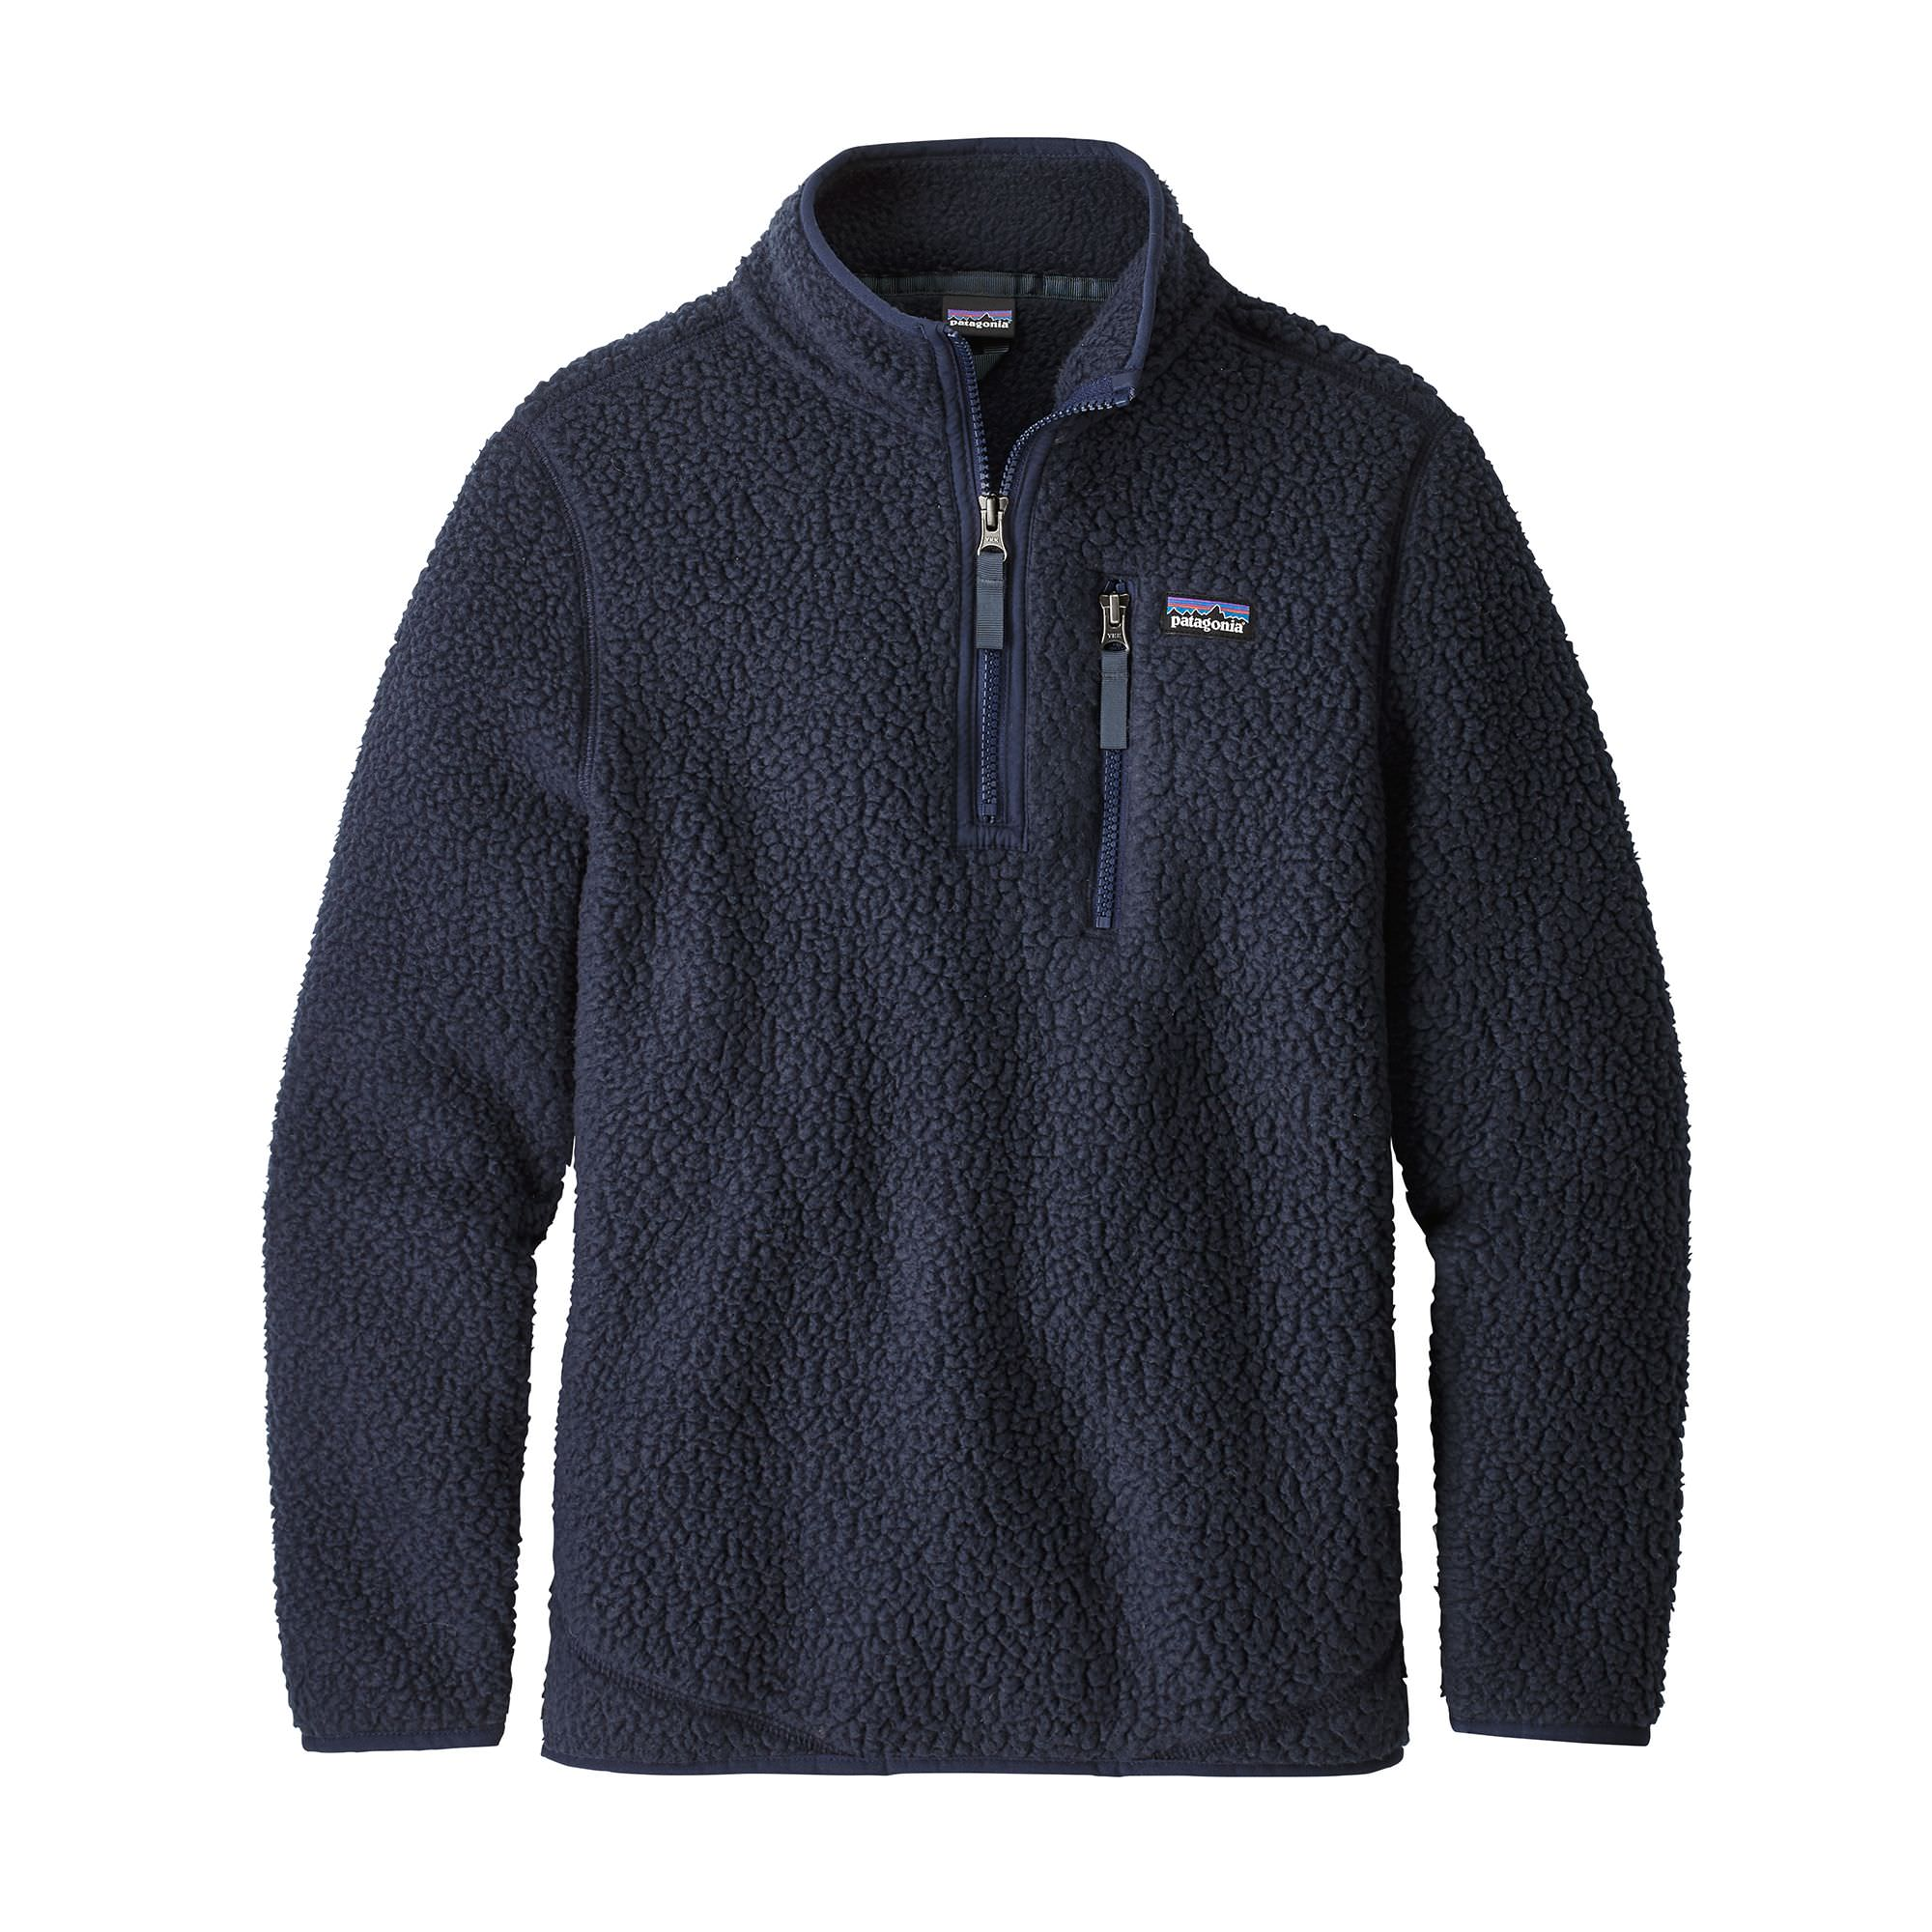 Patagonia Boy's Retro Pile 1/4 Zip